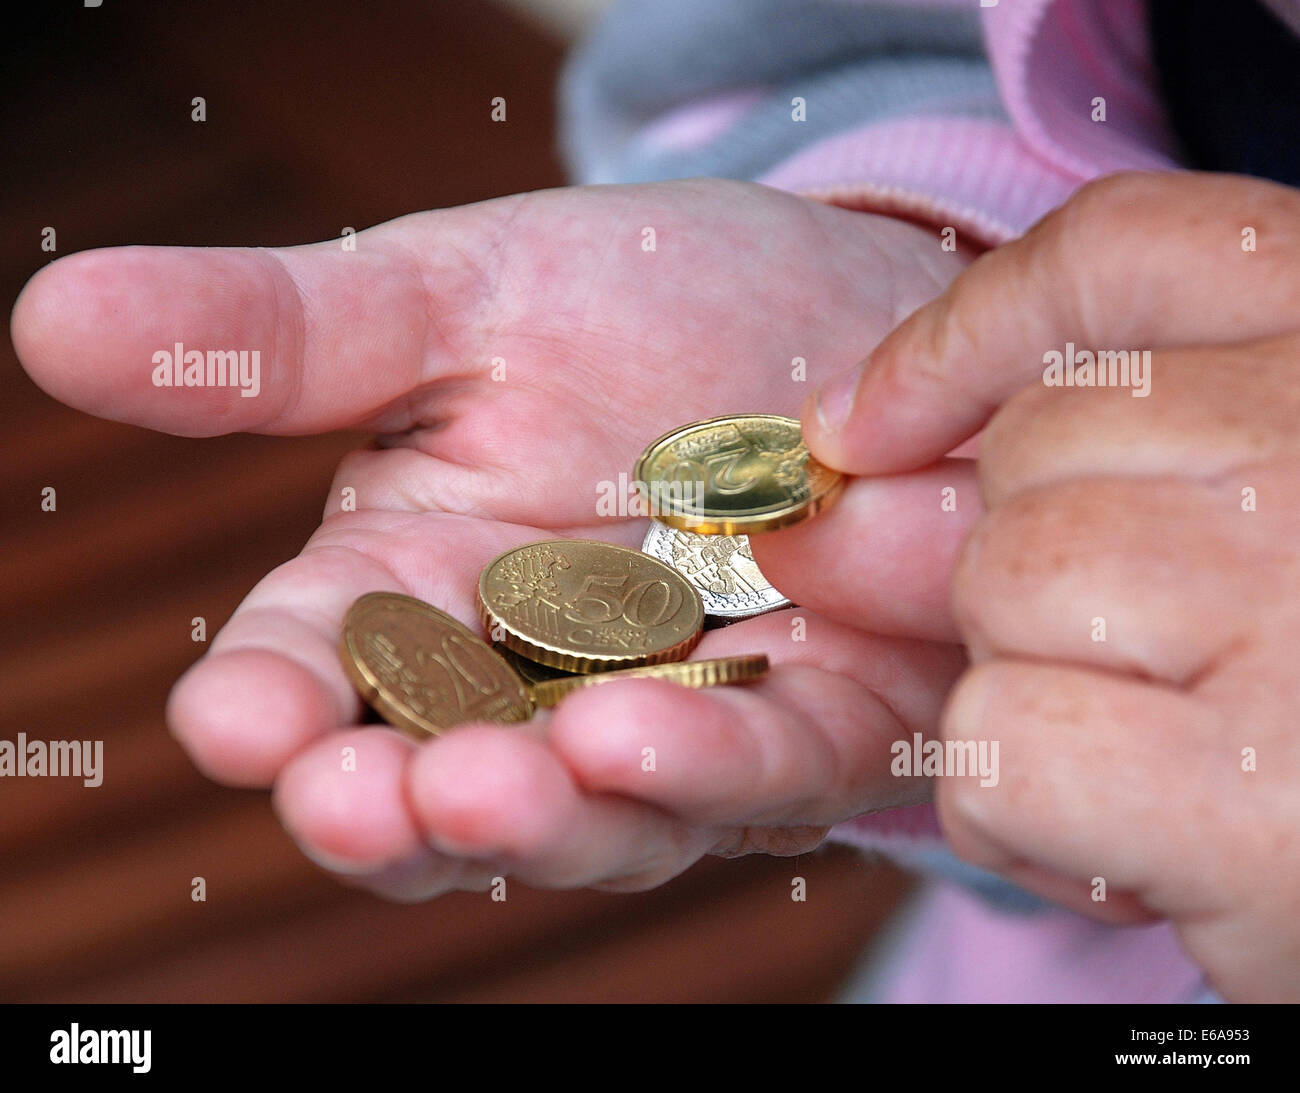 hand,paying,coins - Stock Image